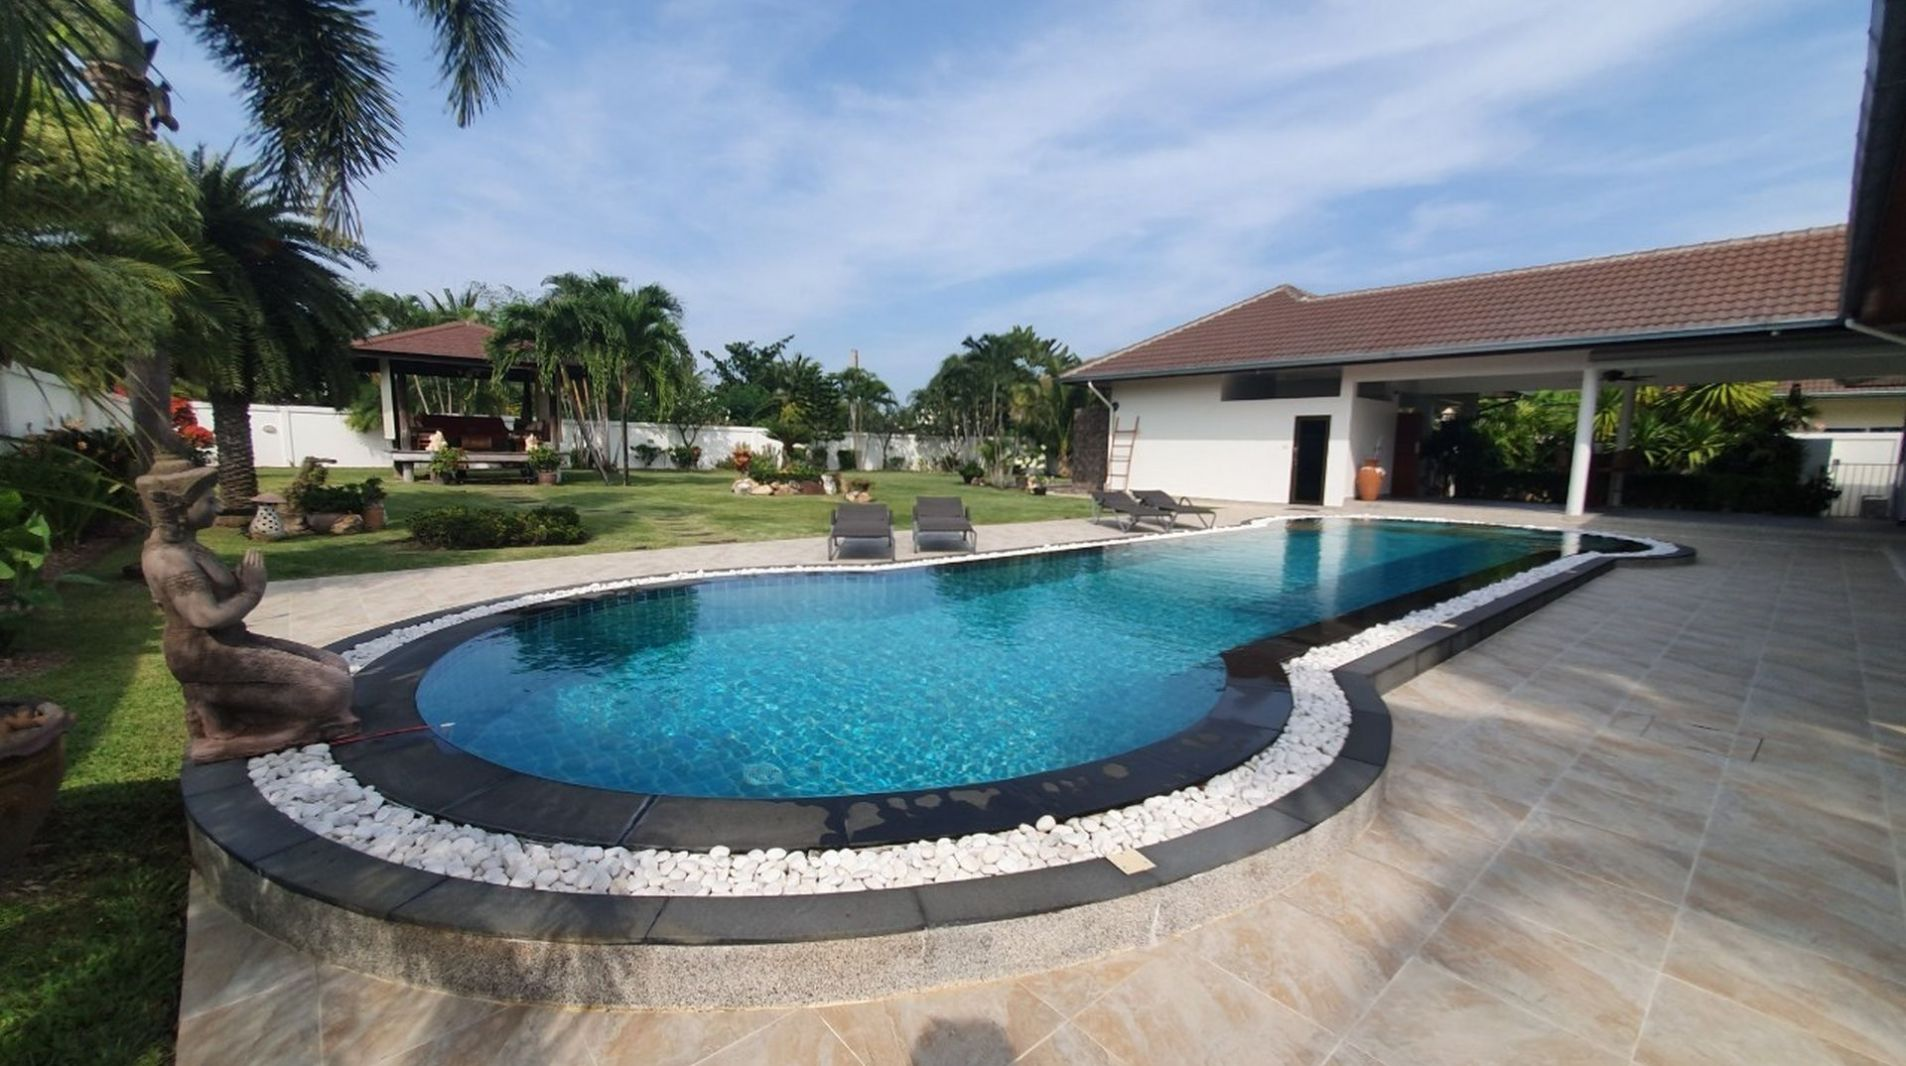 homes-for-sale-in-hua-hin-thailand-247071241